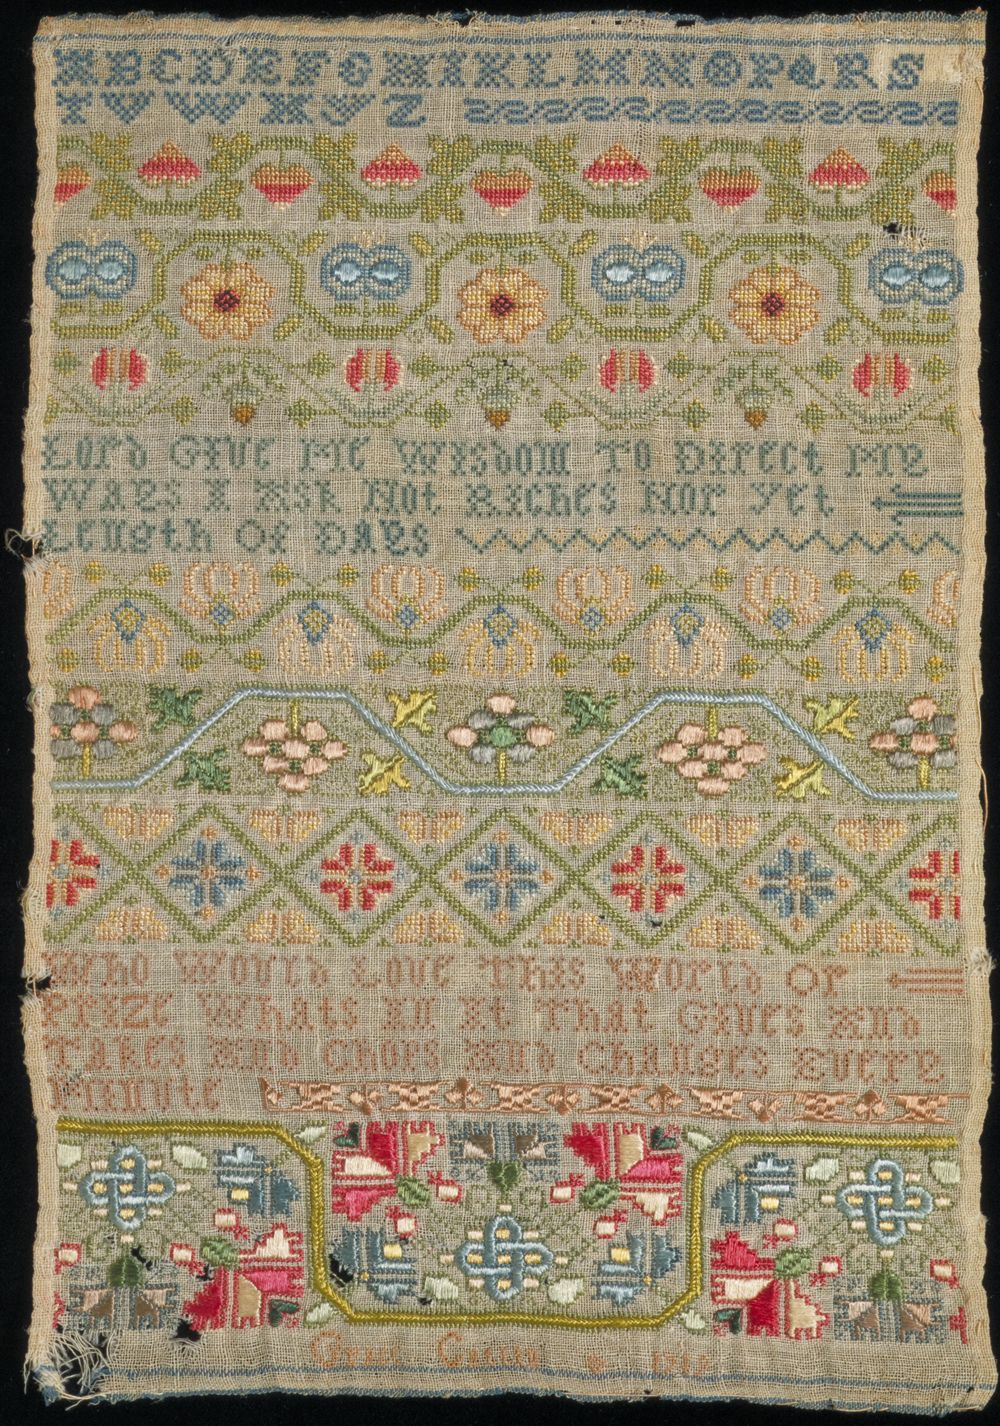 History of samplers th century victoria and albert museum